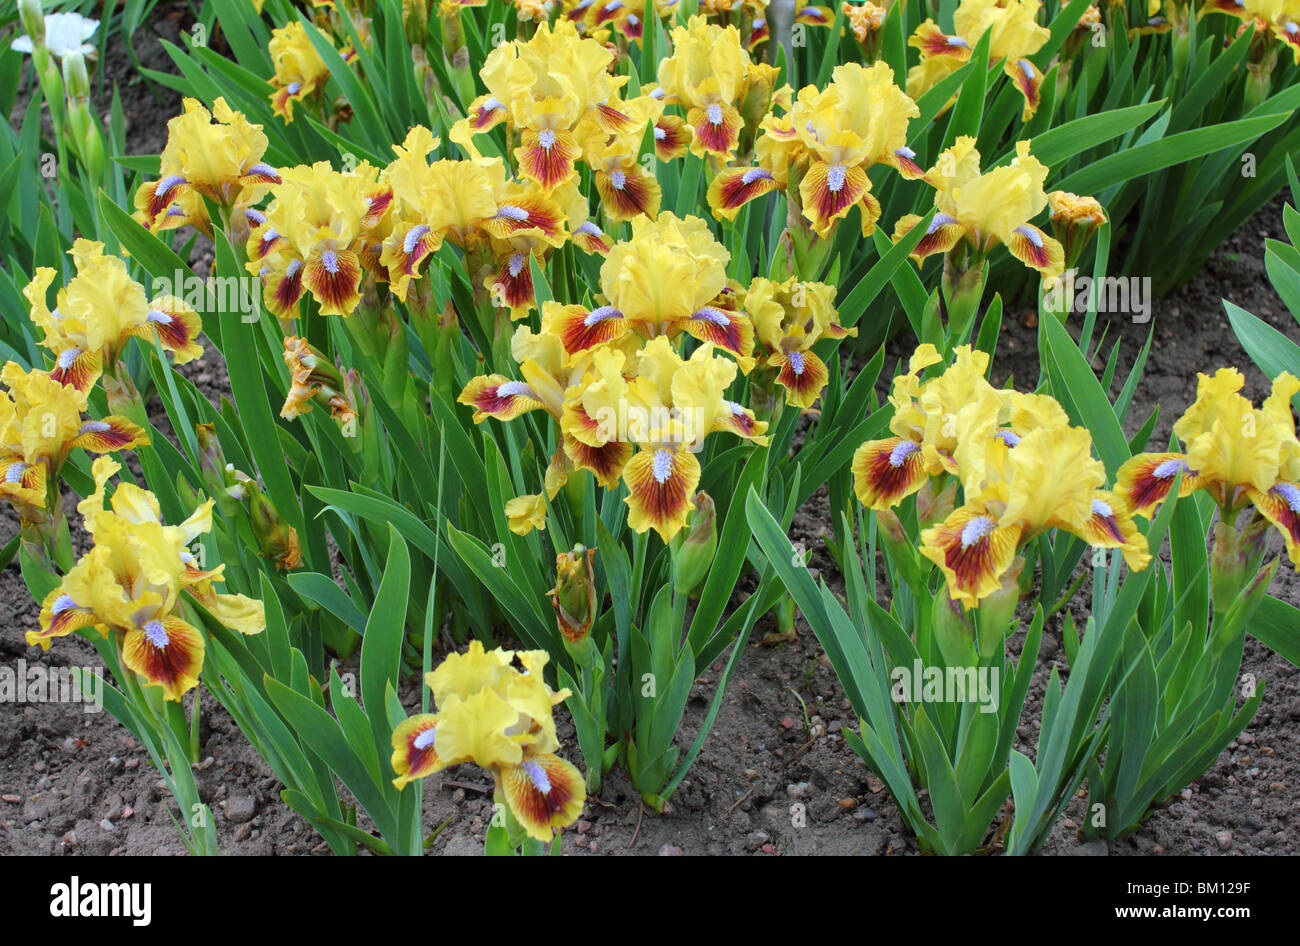 Yellow brown Iris 'Golden ruby' flowers close up - Stock Image